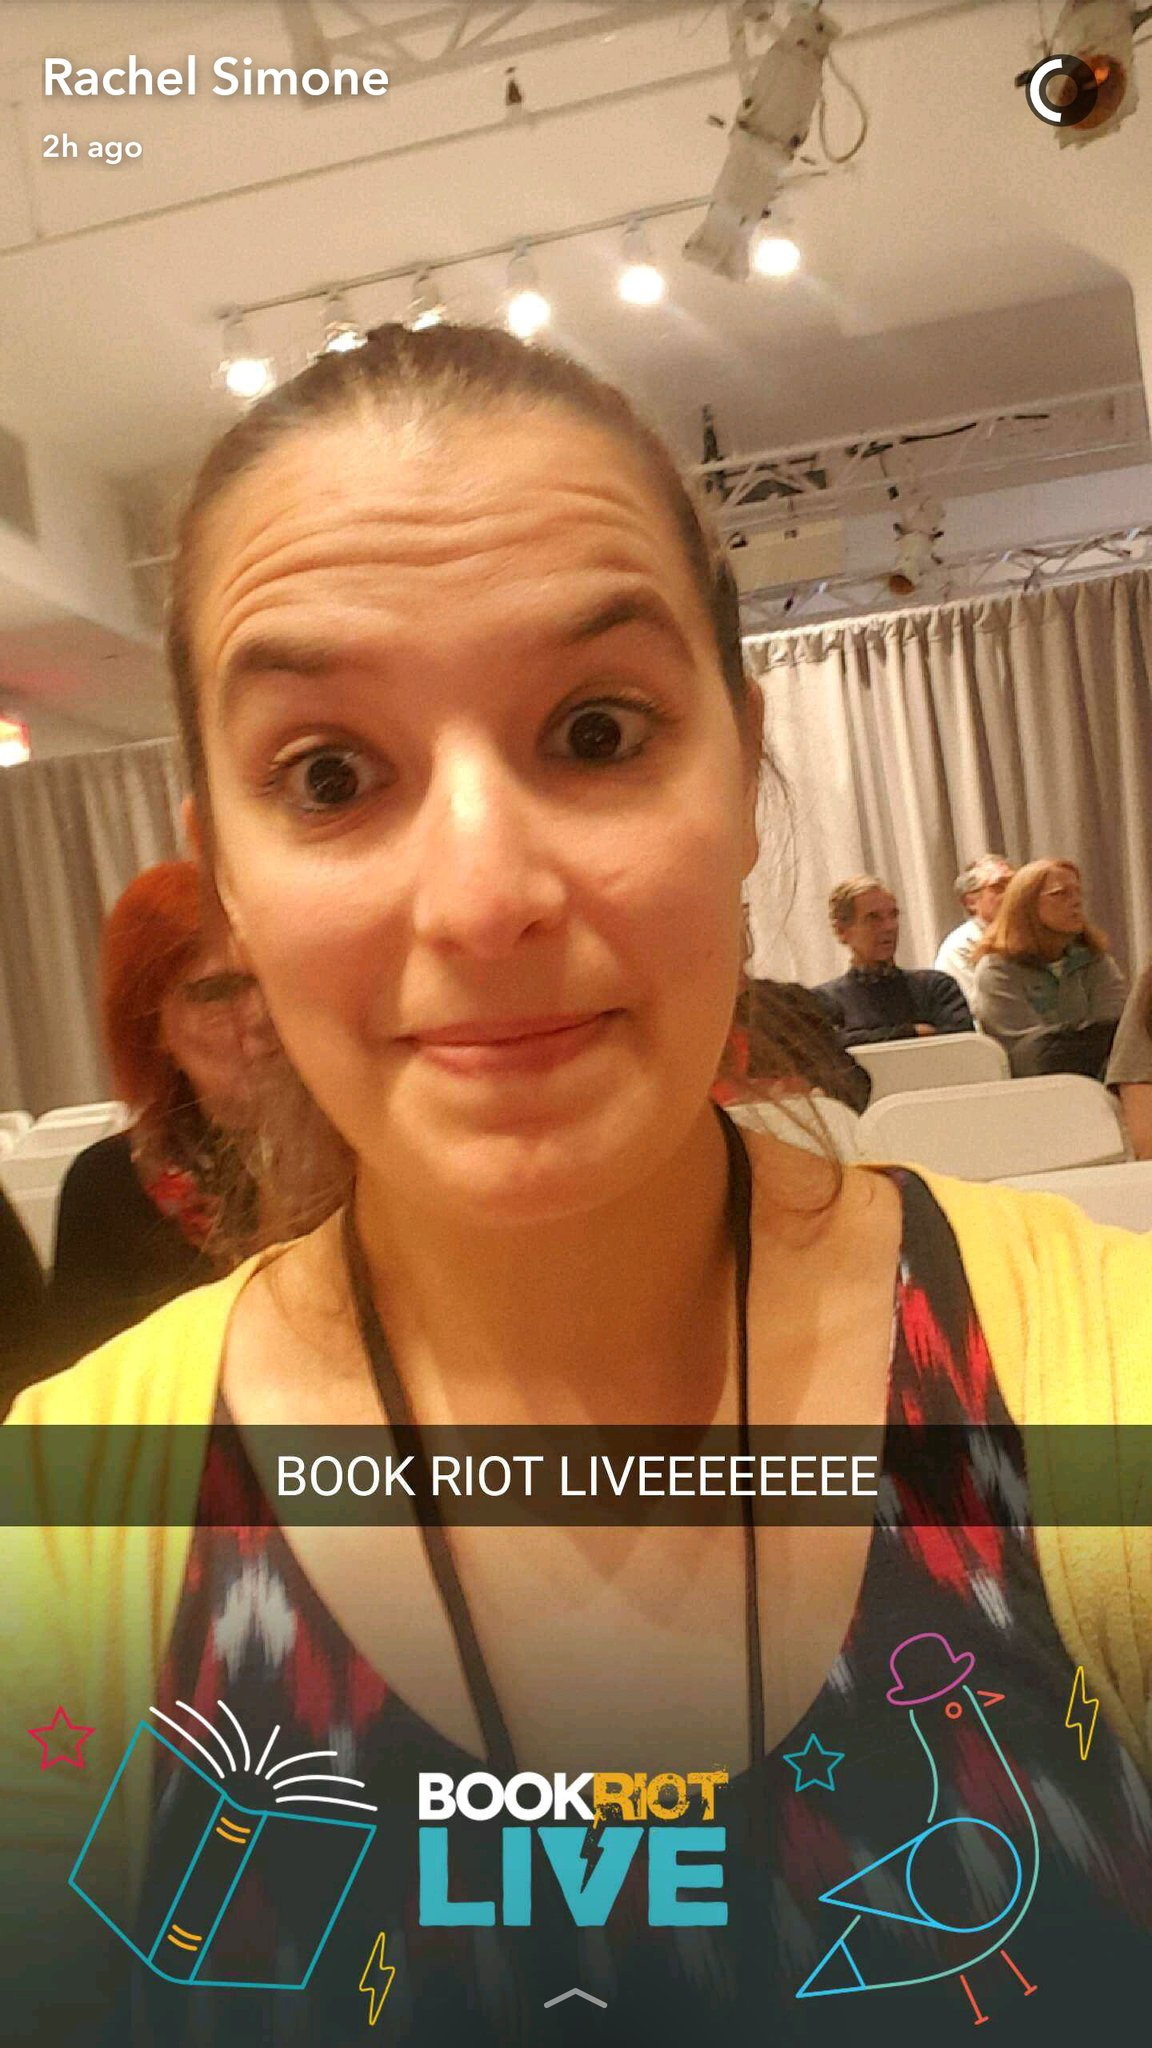 Oh yeah Snapchat filter! Legit. #BRLiveBingo #BRlive https://t.co/FShYZas2Sv